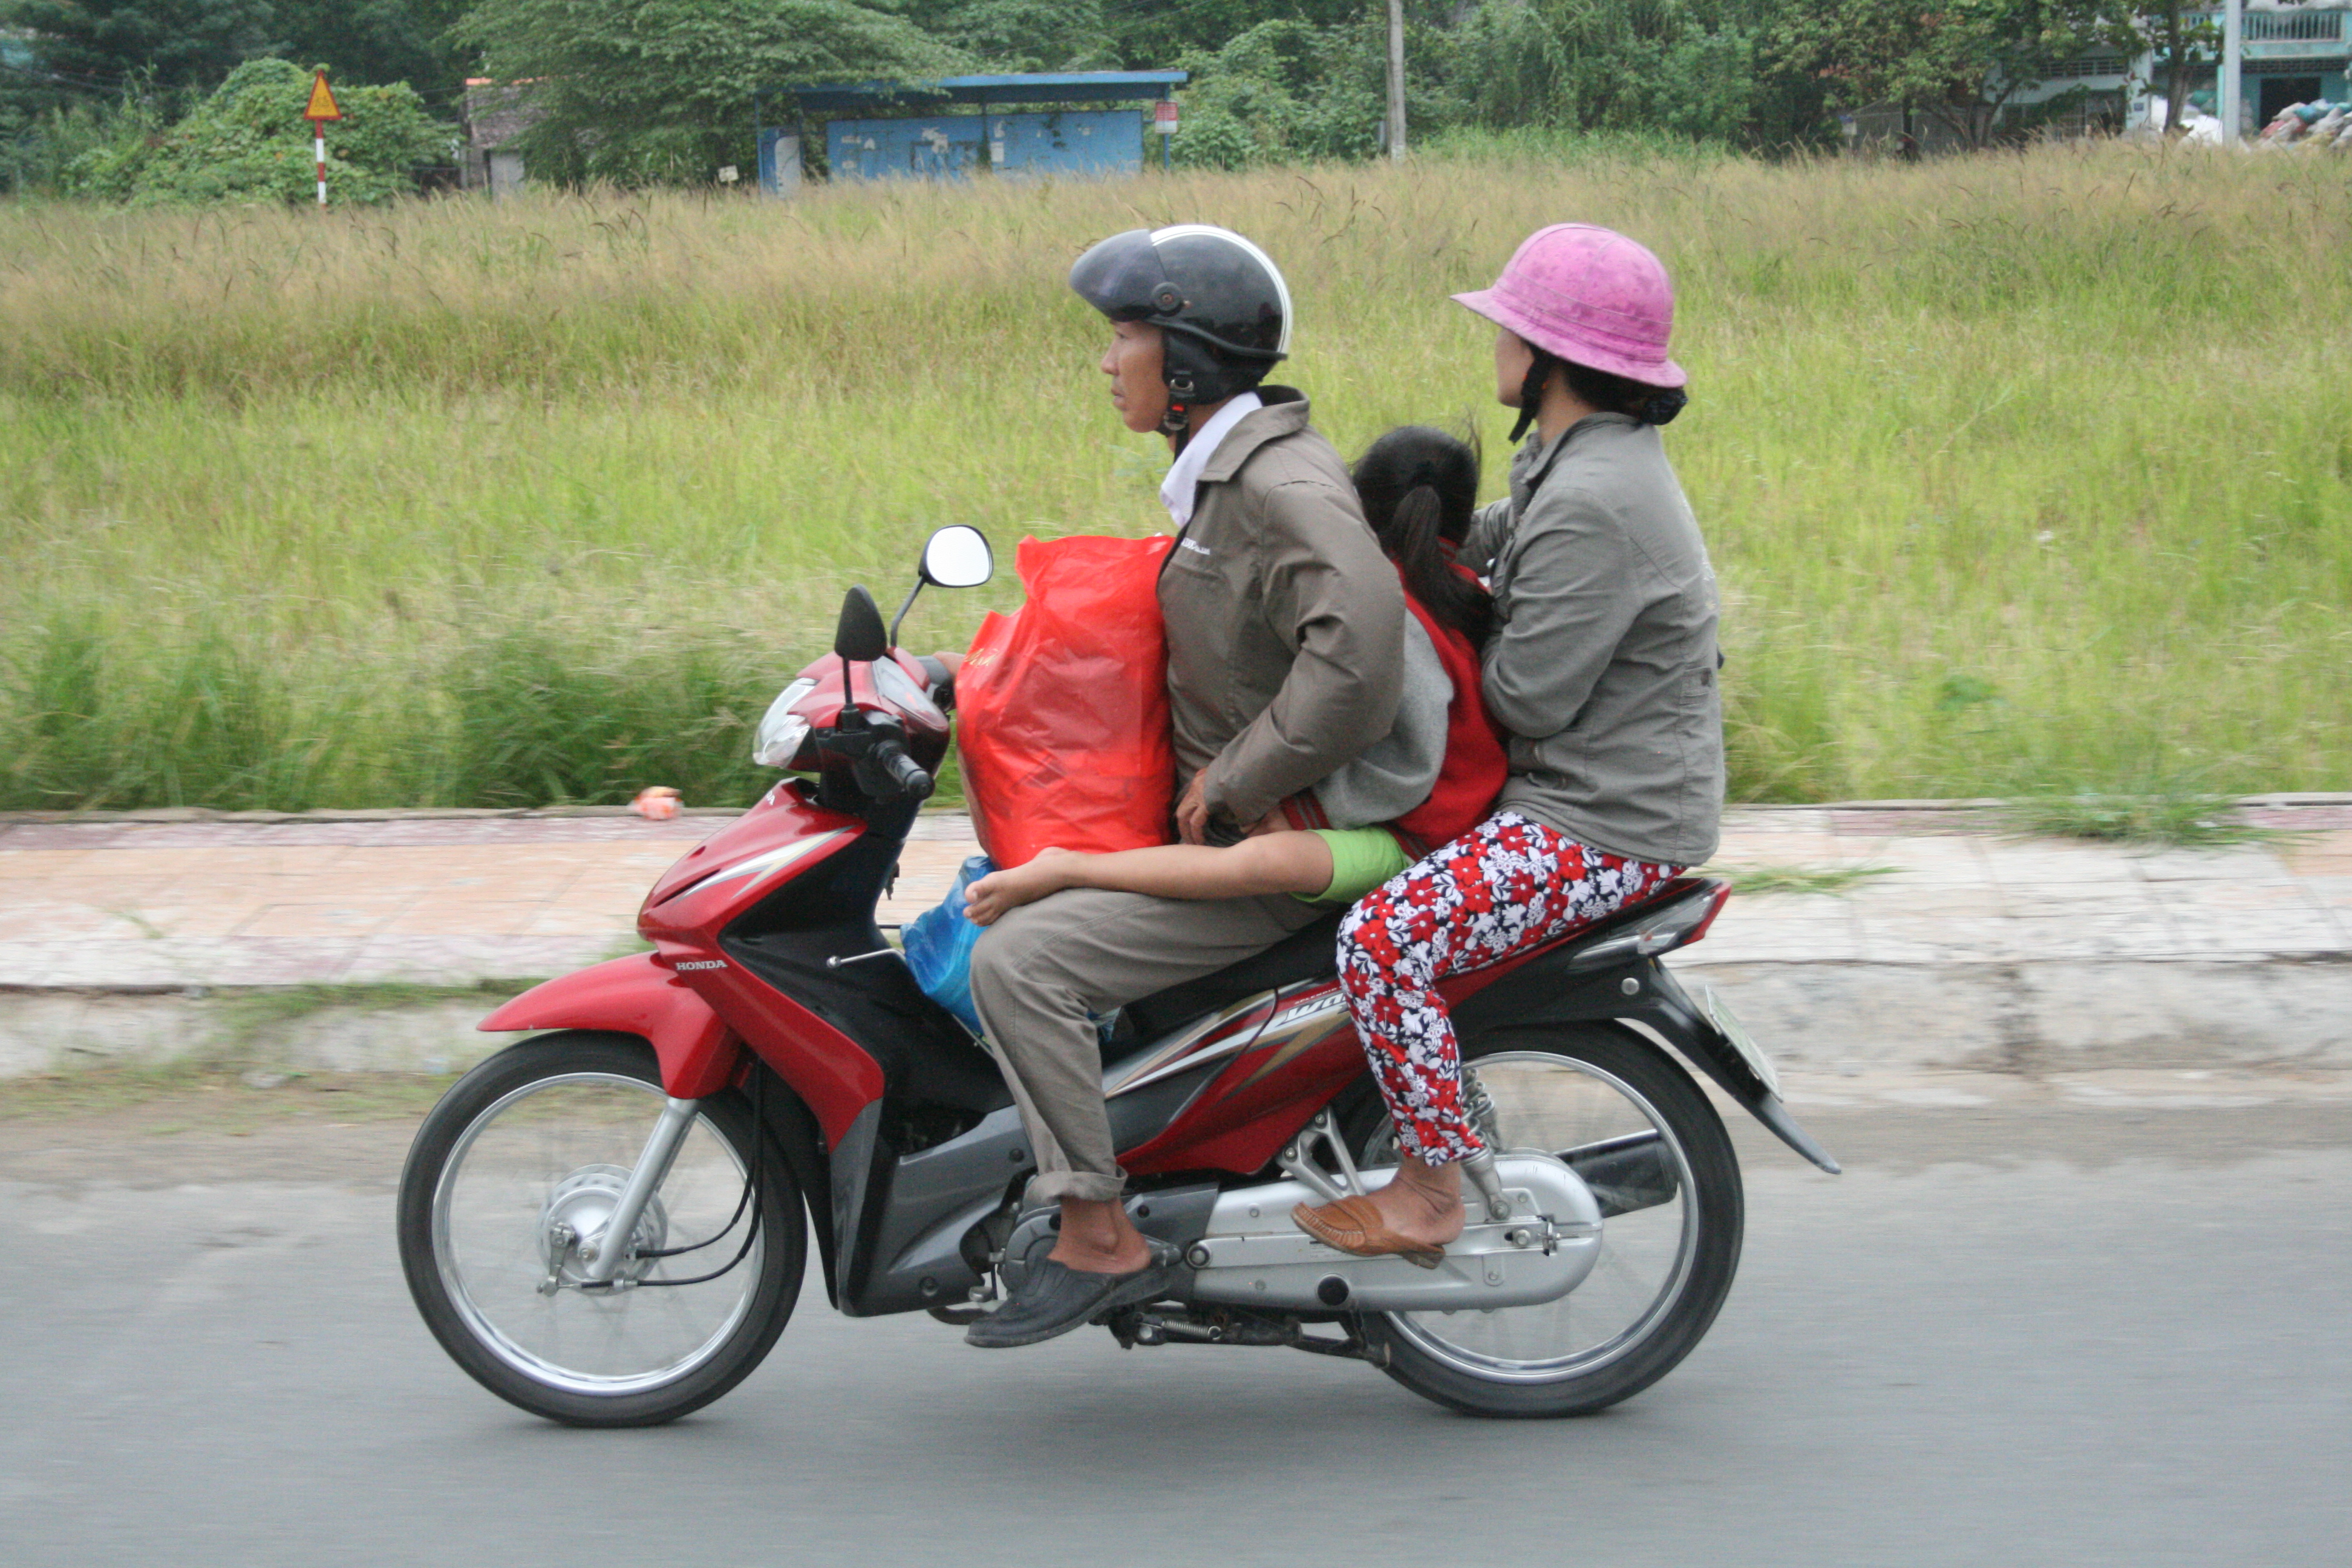 A family on the move